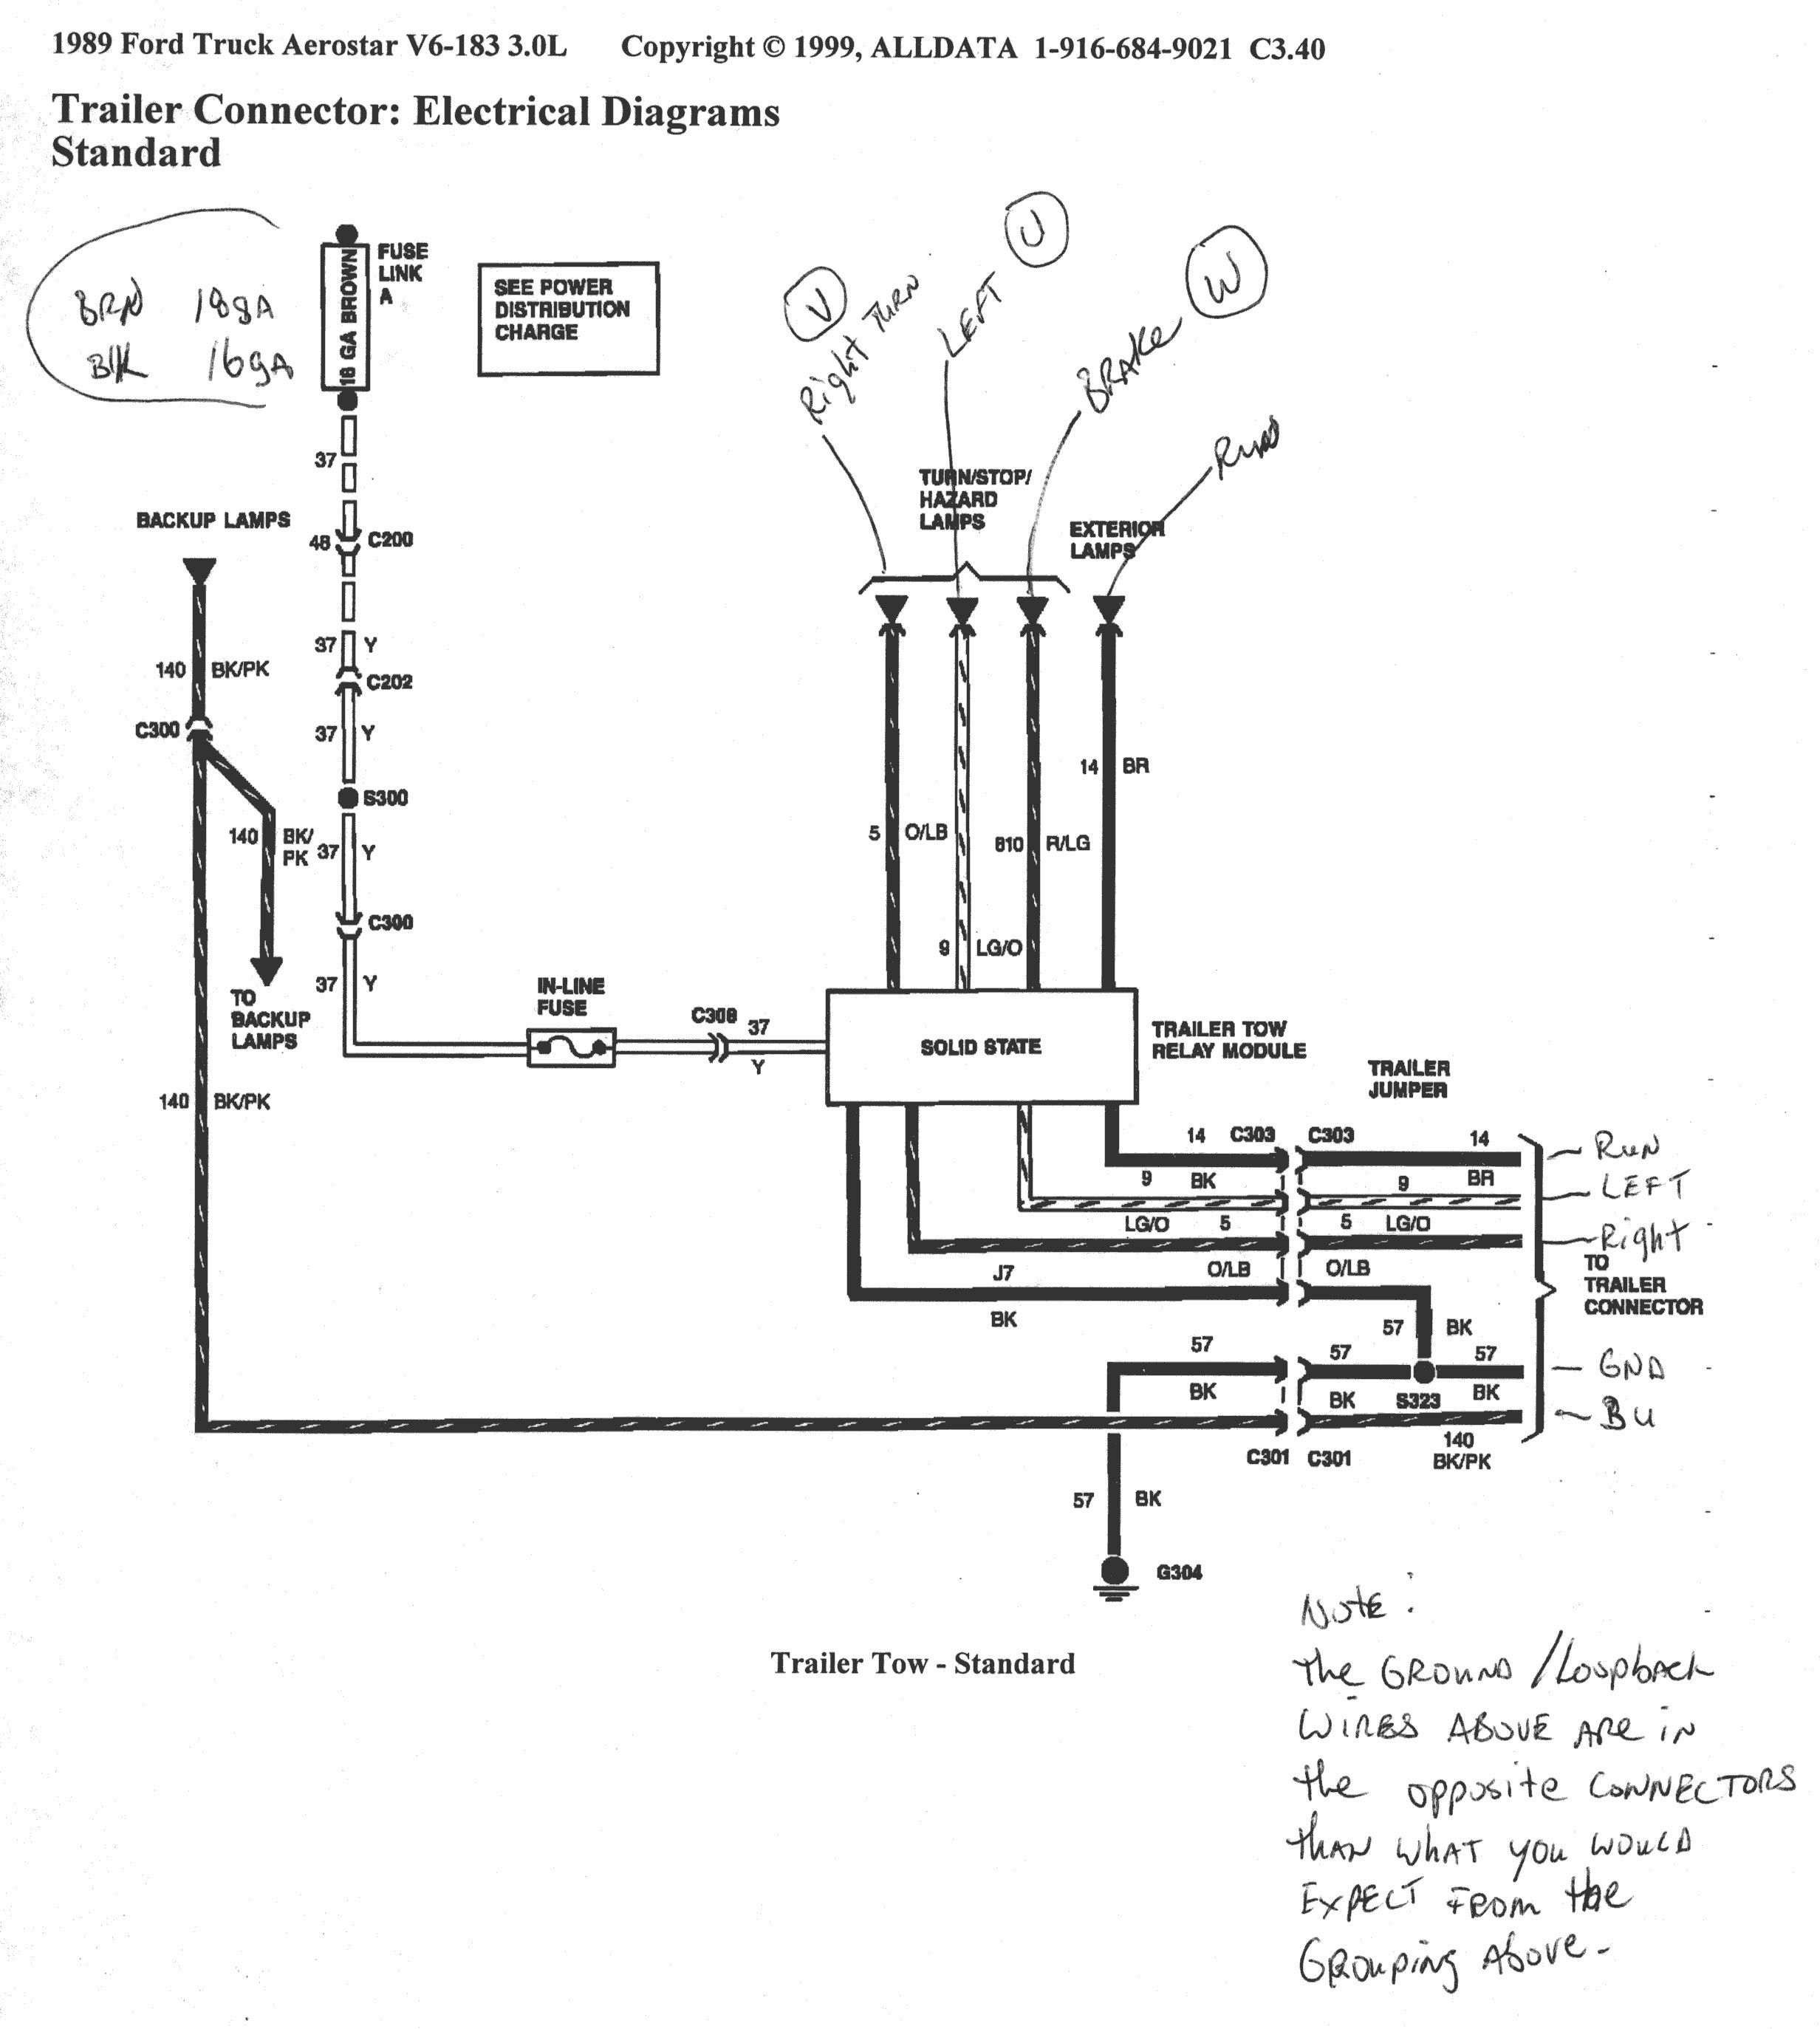 Harness Routingcar Wiring Diagram - Residential Electrical Symbols •